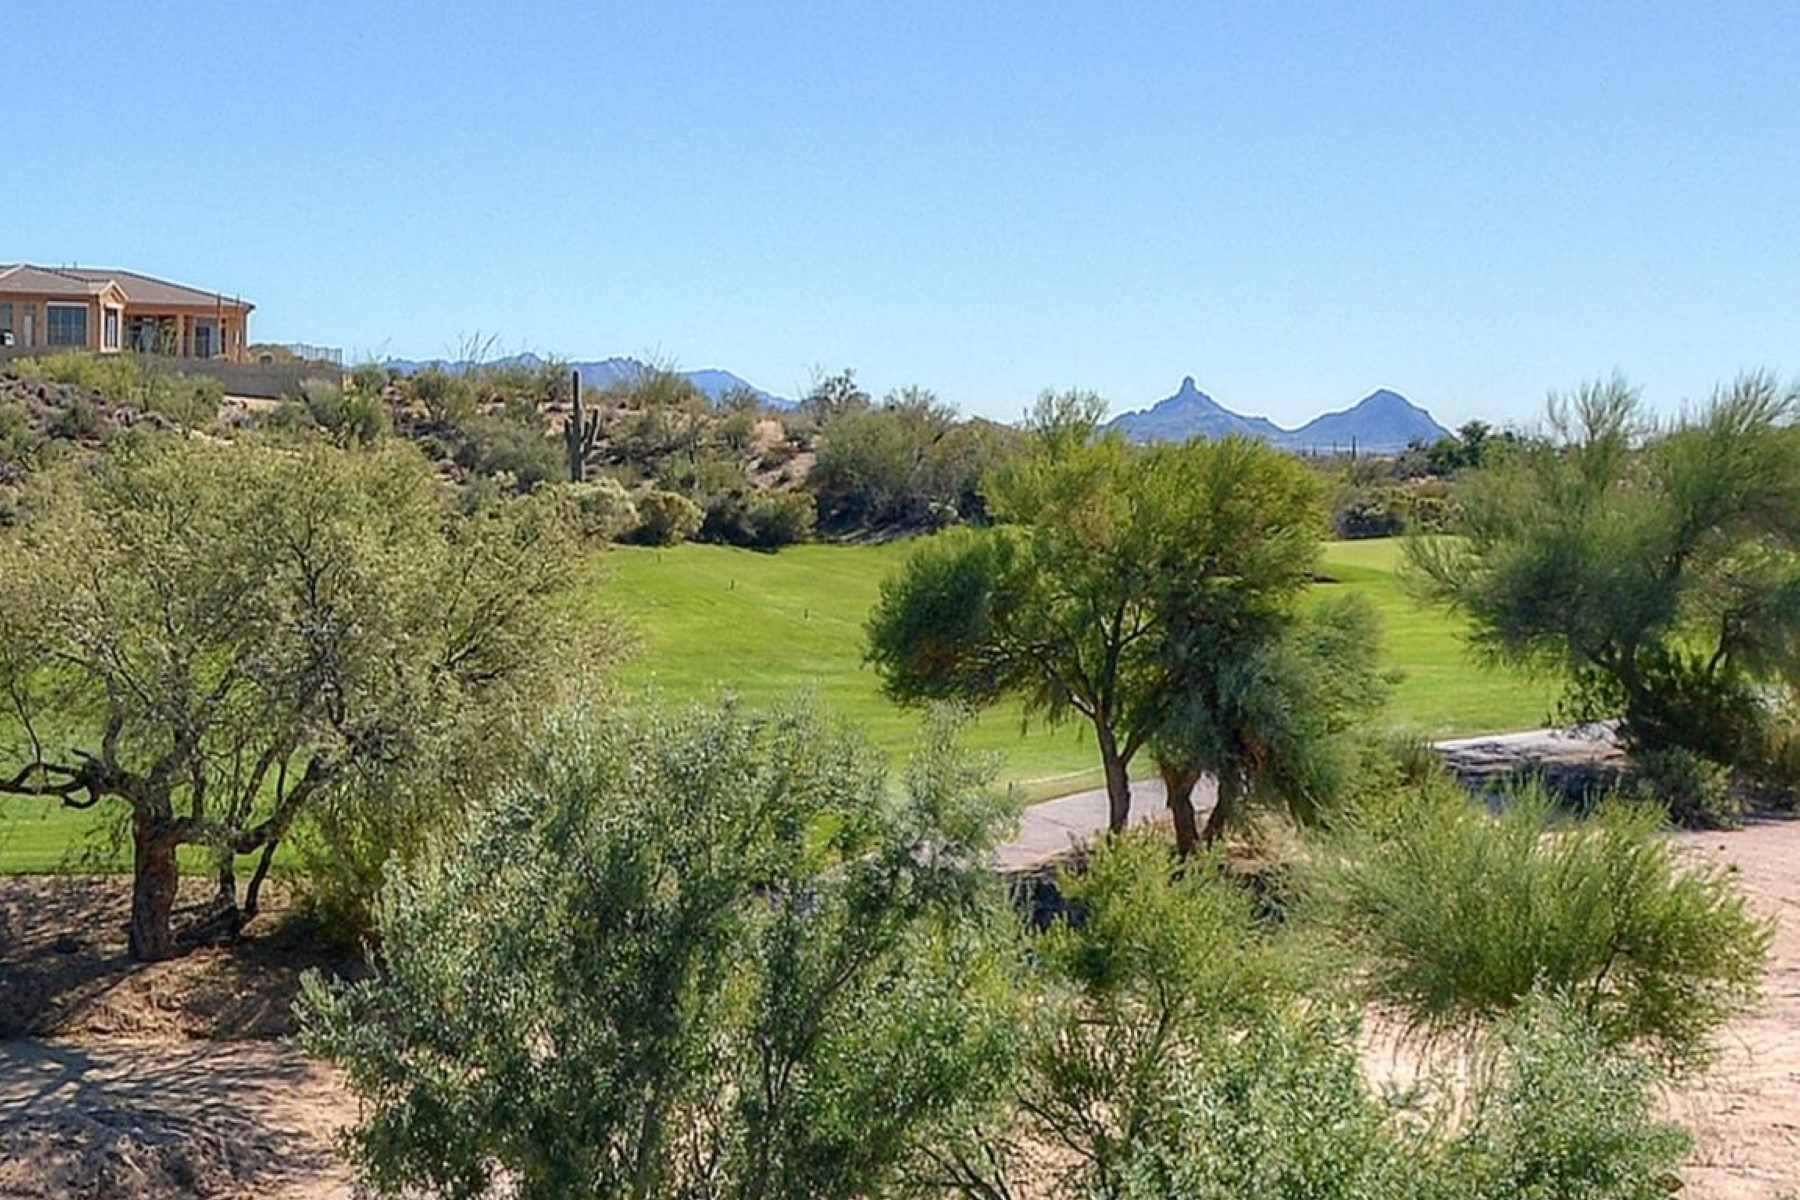 Apartment for Sale at Breathtaking views of legend trail golf course 34457 N LEGEND TRAIL PKWY #2019 Scottsdale, Arizona 85262 United States